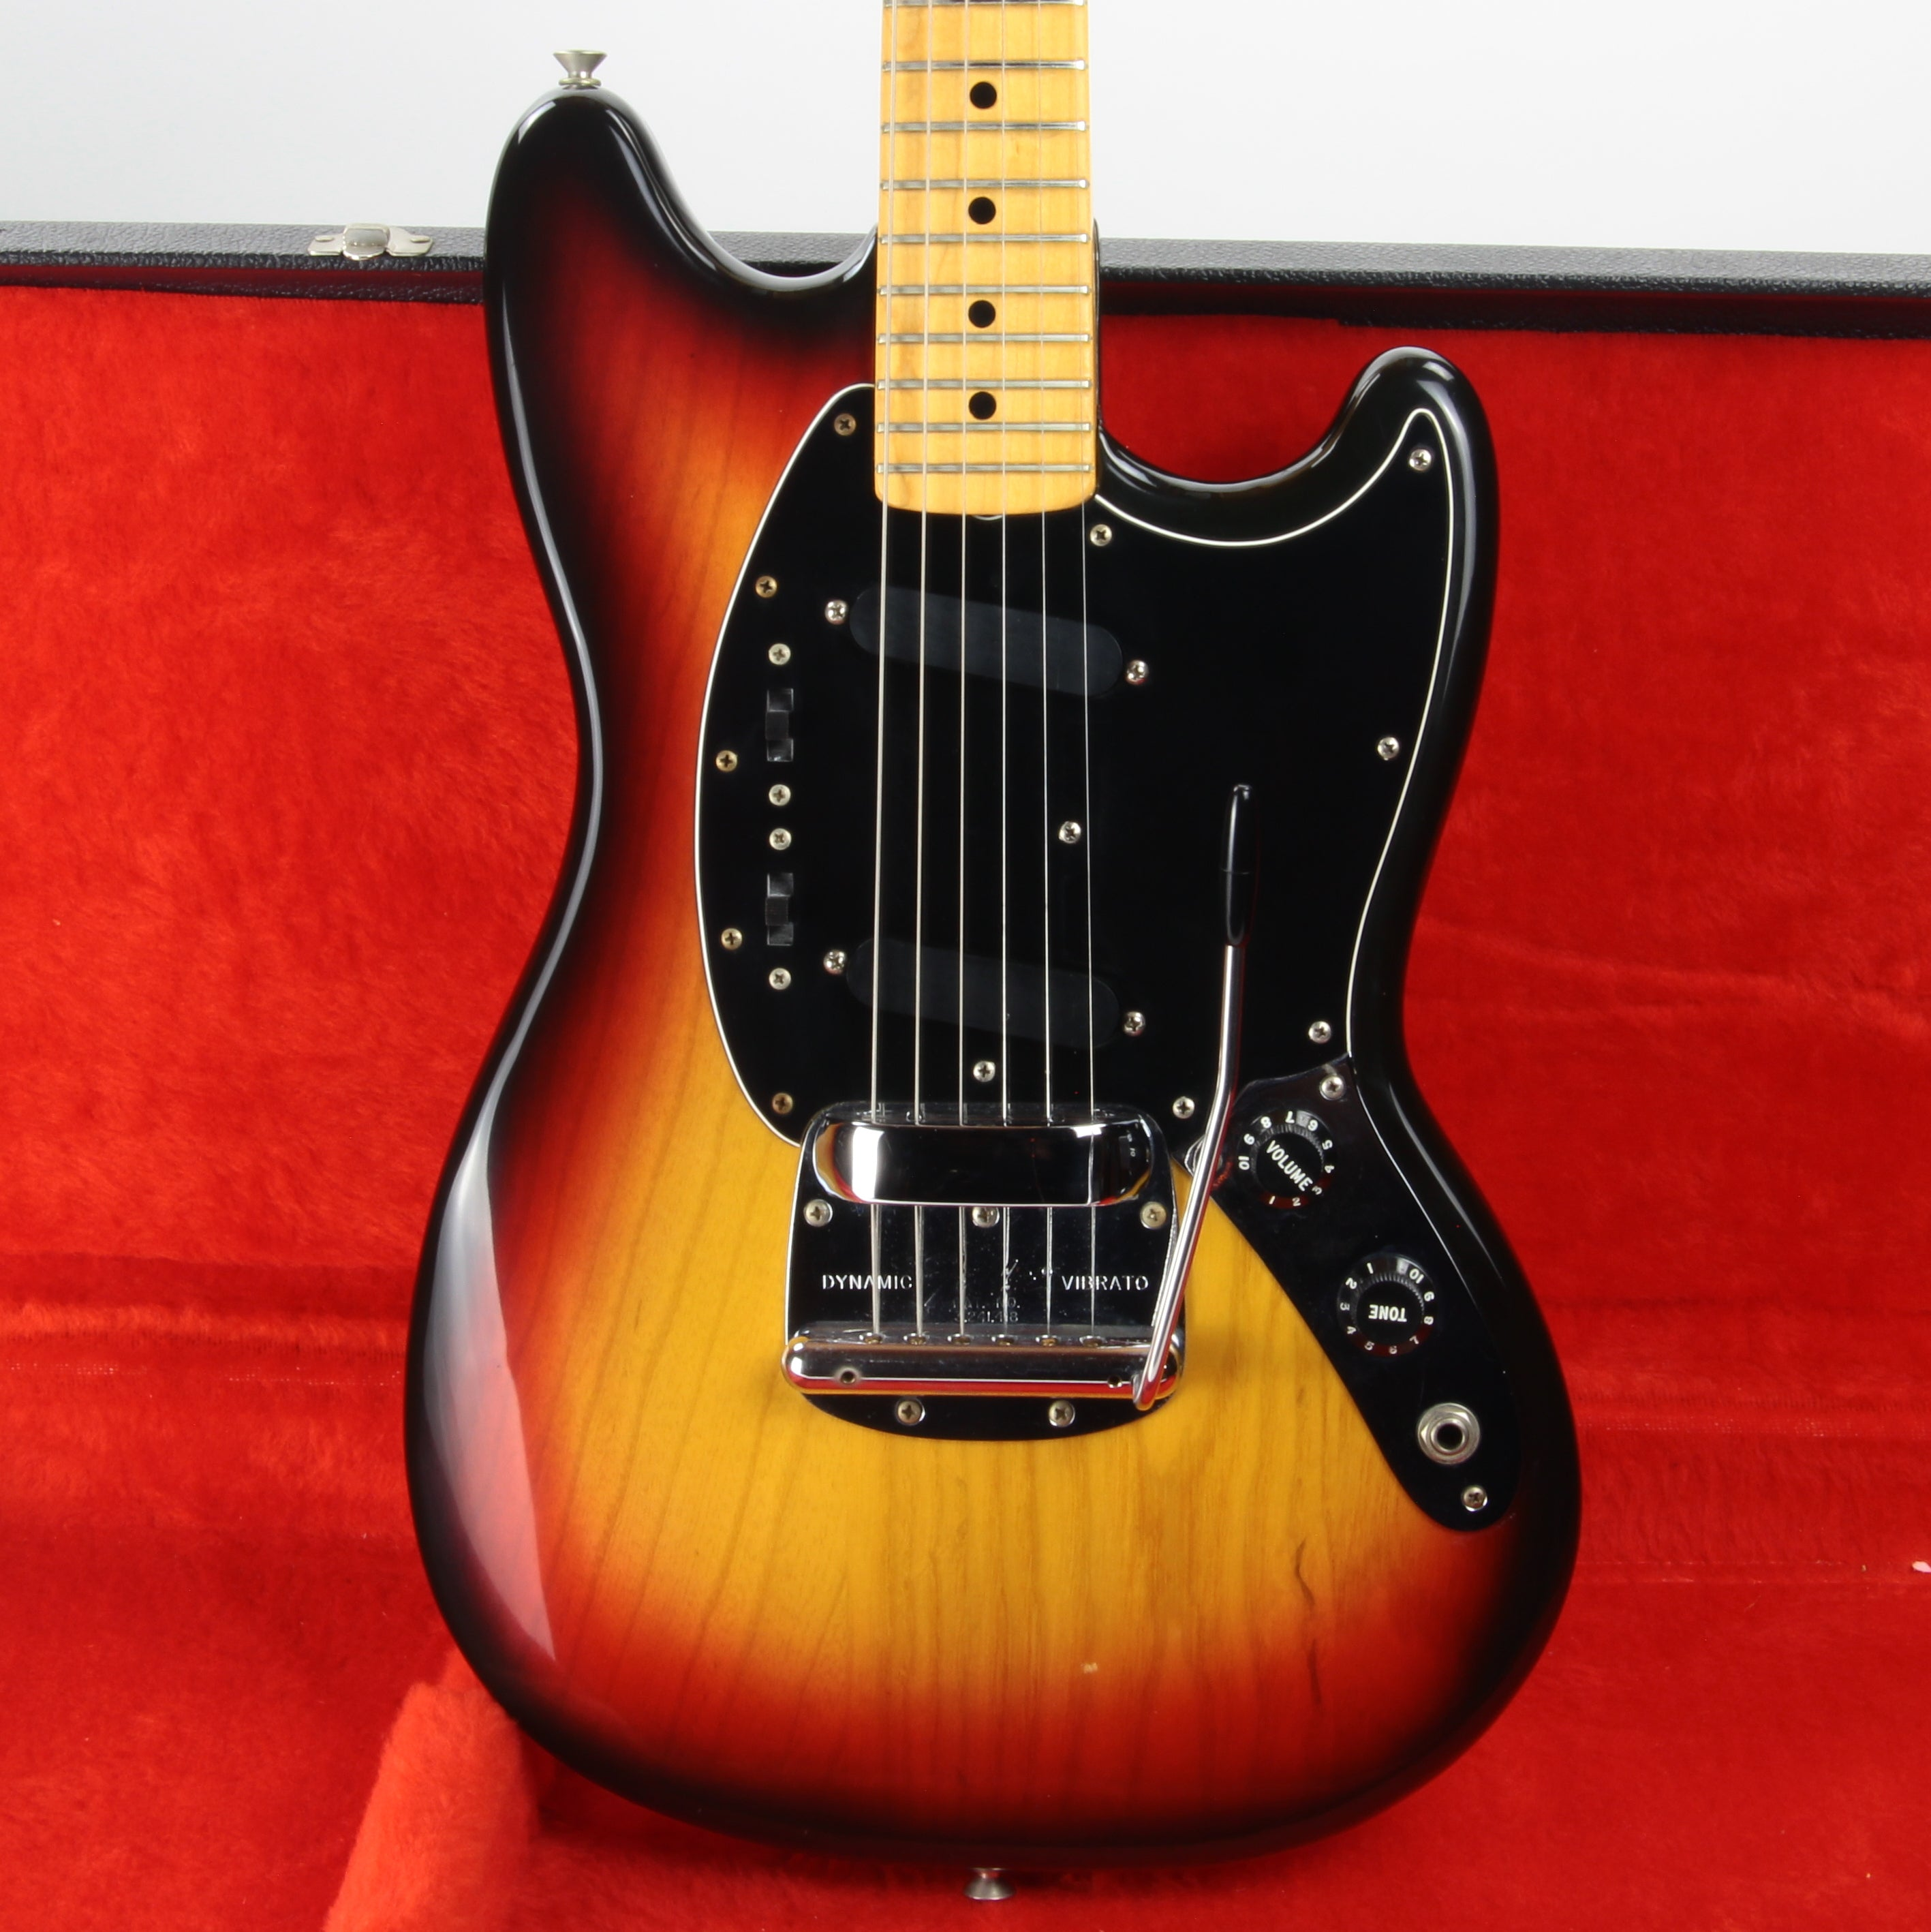 1976 Fender MUSTANG w/ Original Case, Tags - Sunburst Maple Neck Vintage 24